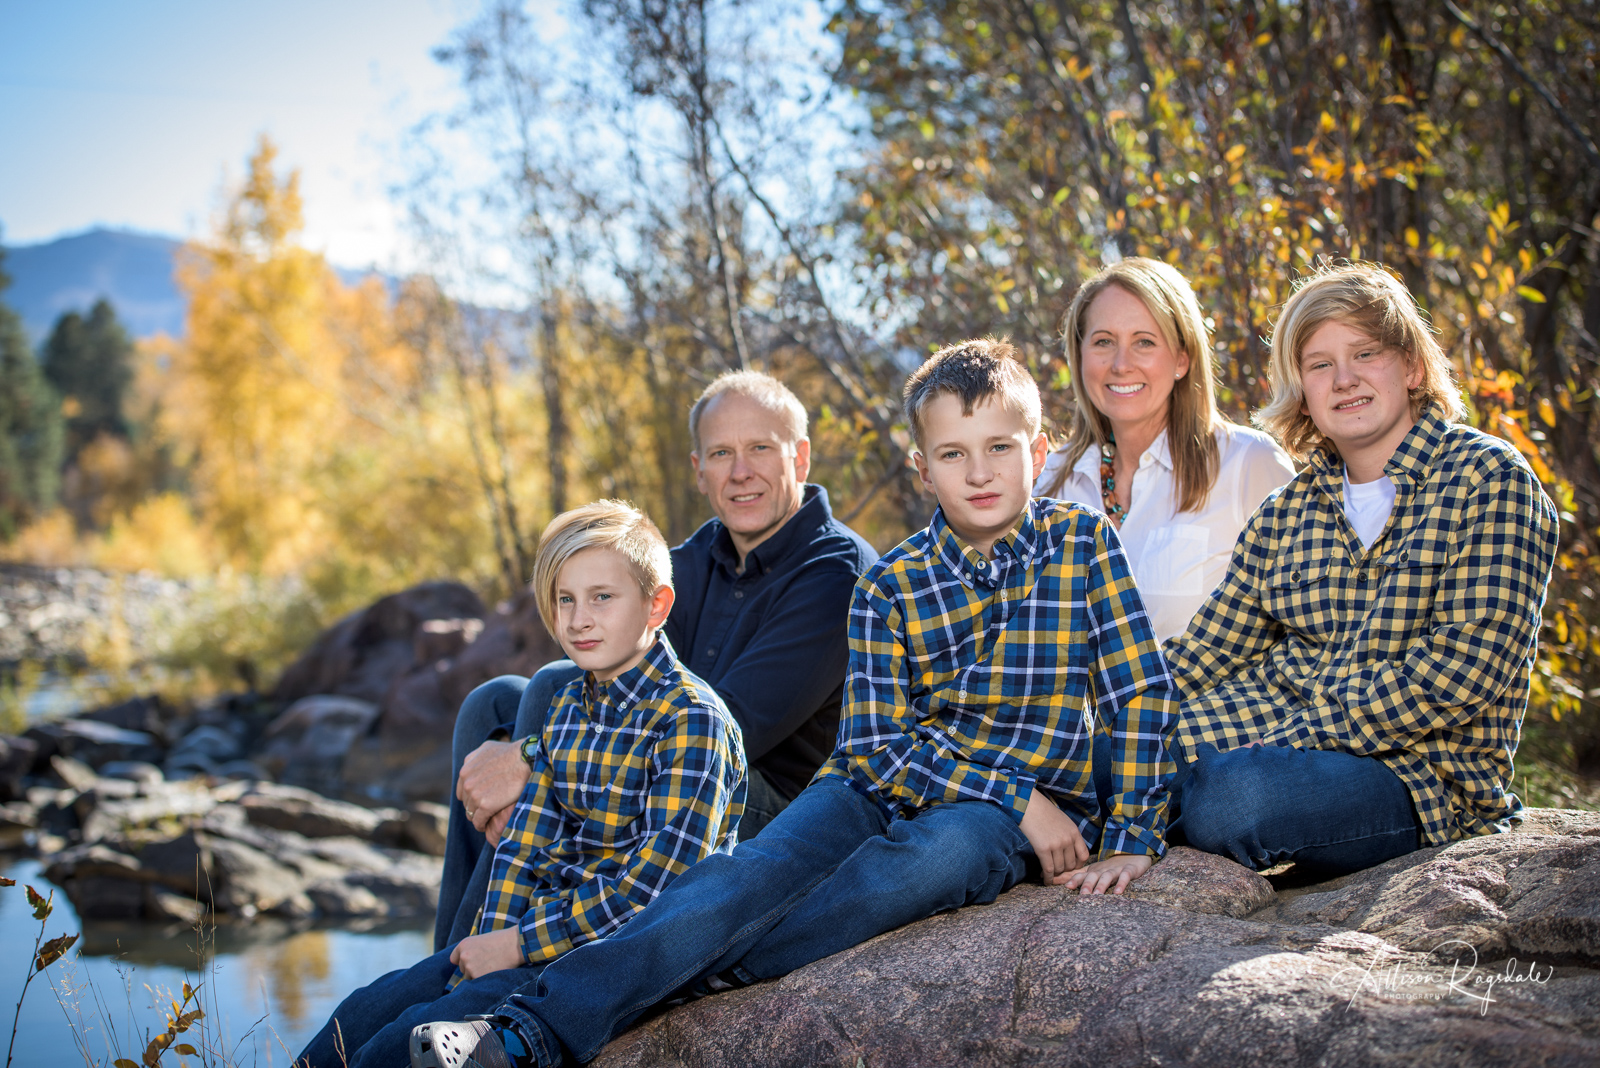 Sherwin Family Portraits | Durango Colorado